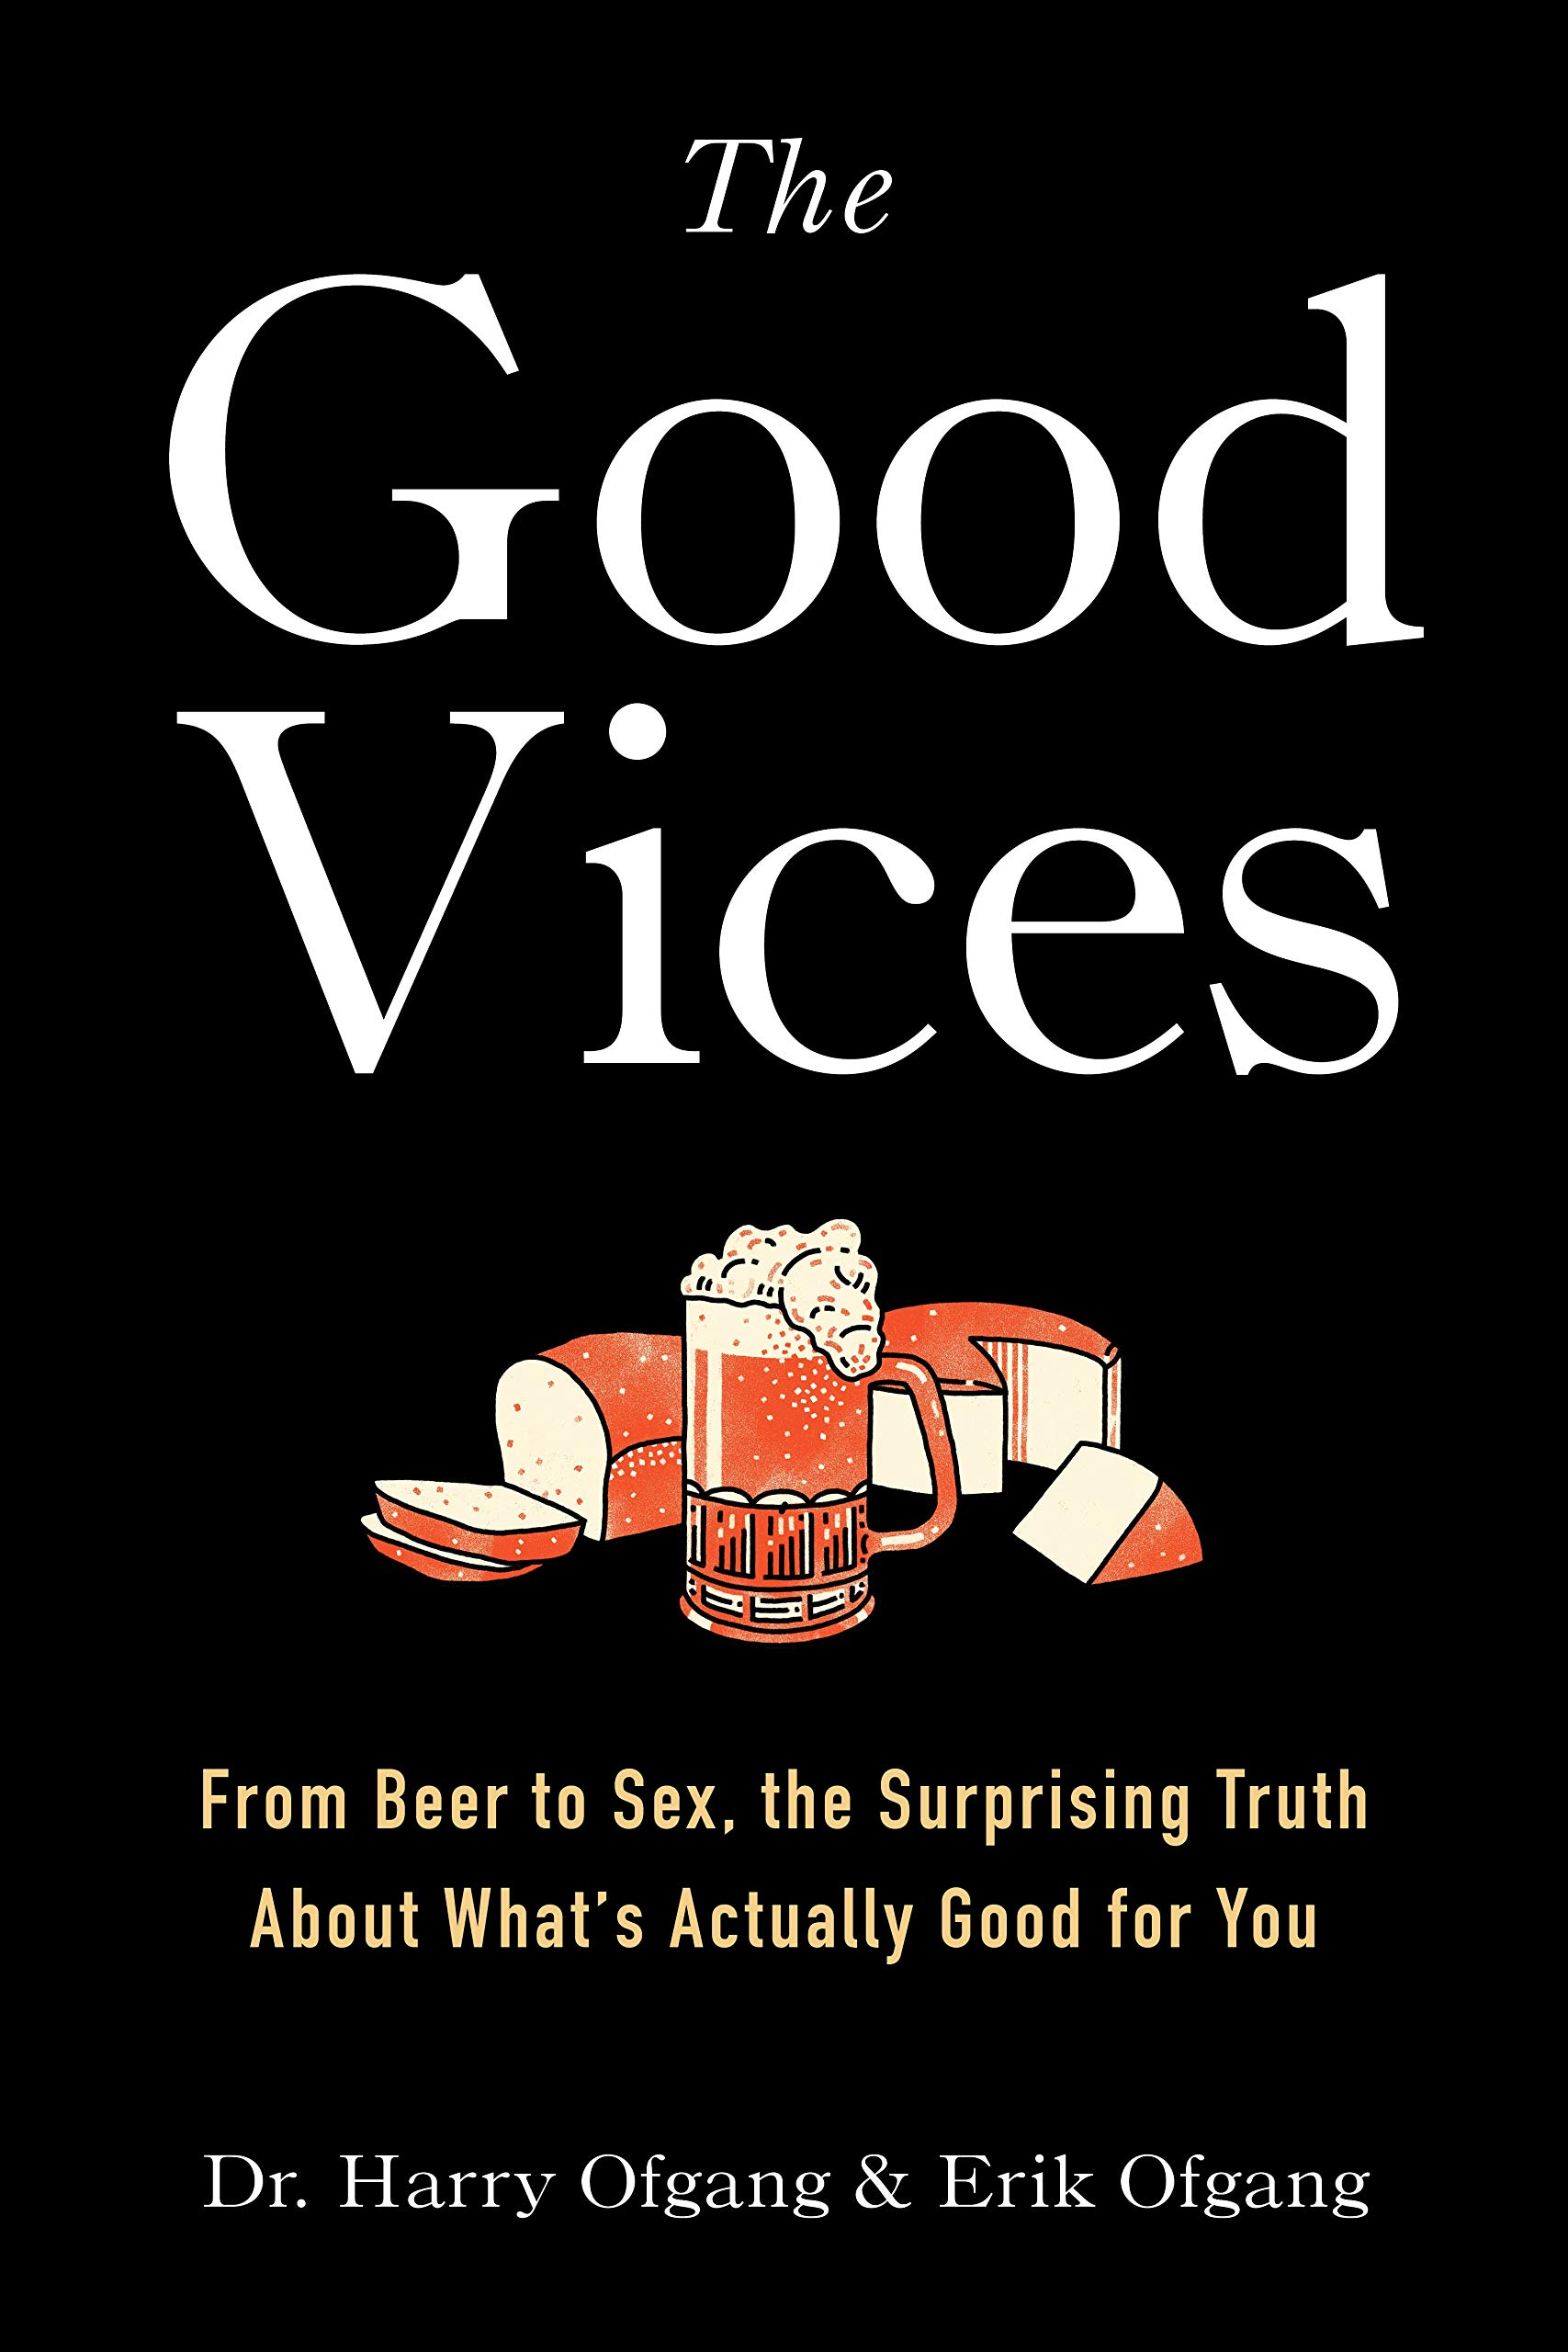 fae9bbc7a1 The Good Vices  From Beer to Sex